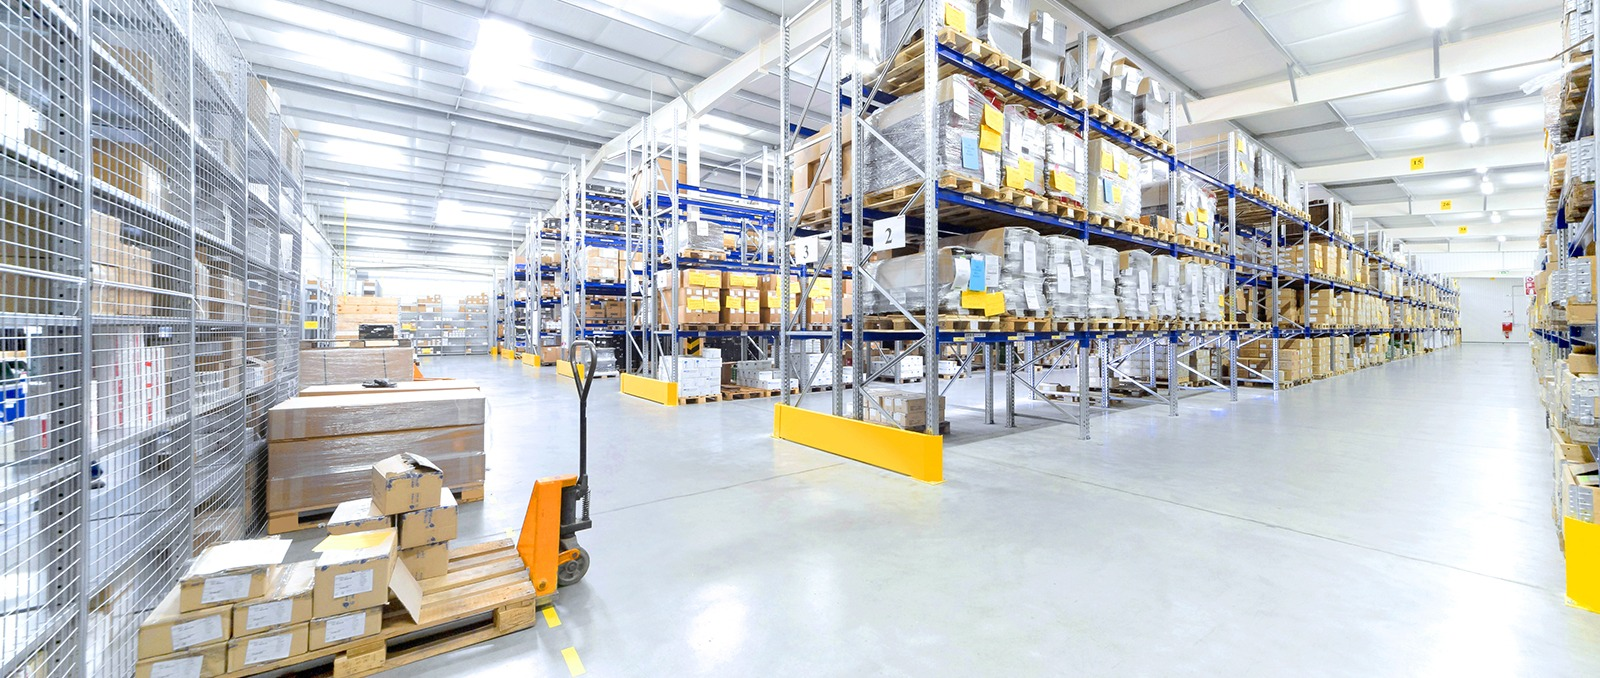 The cost increase of warehouse space